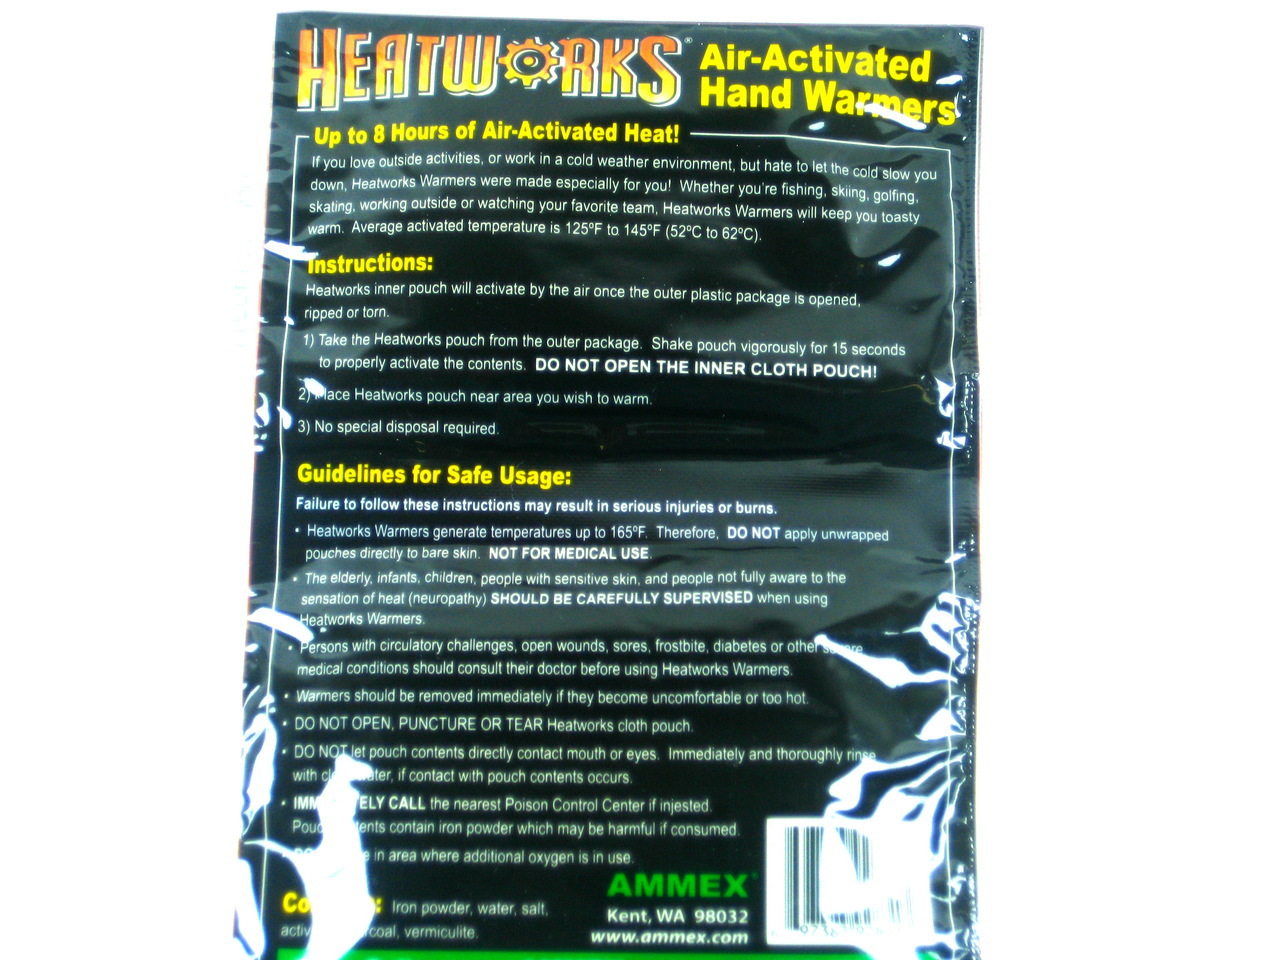 Hand Warmers Air-Activated 1 pack- Two Warmers